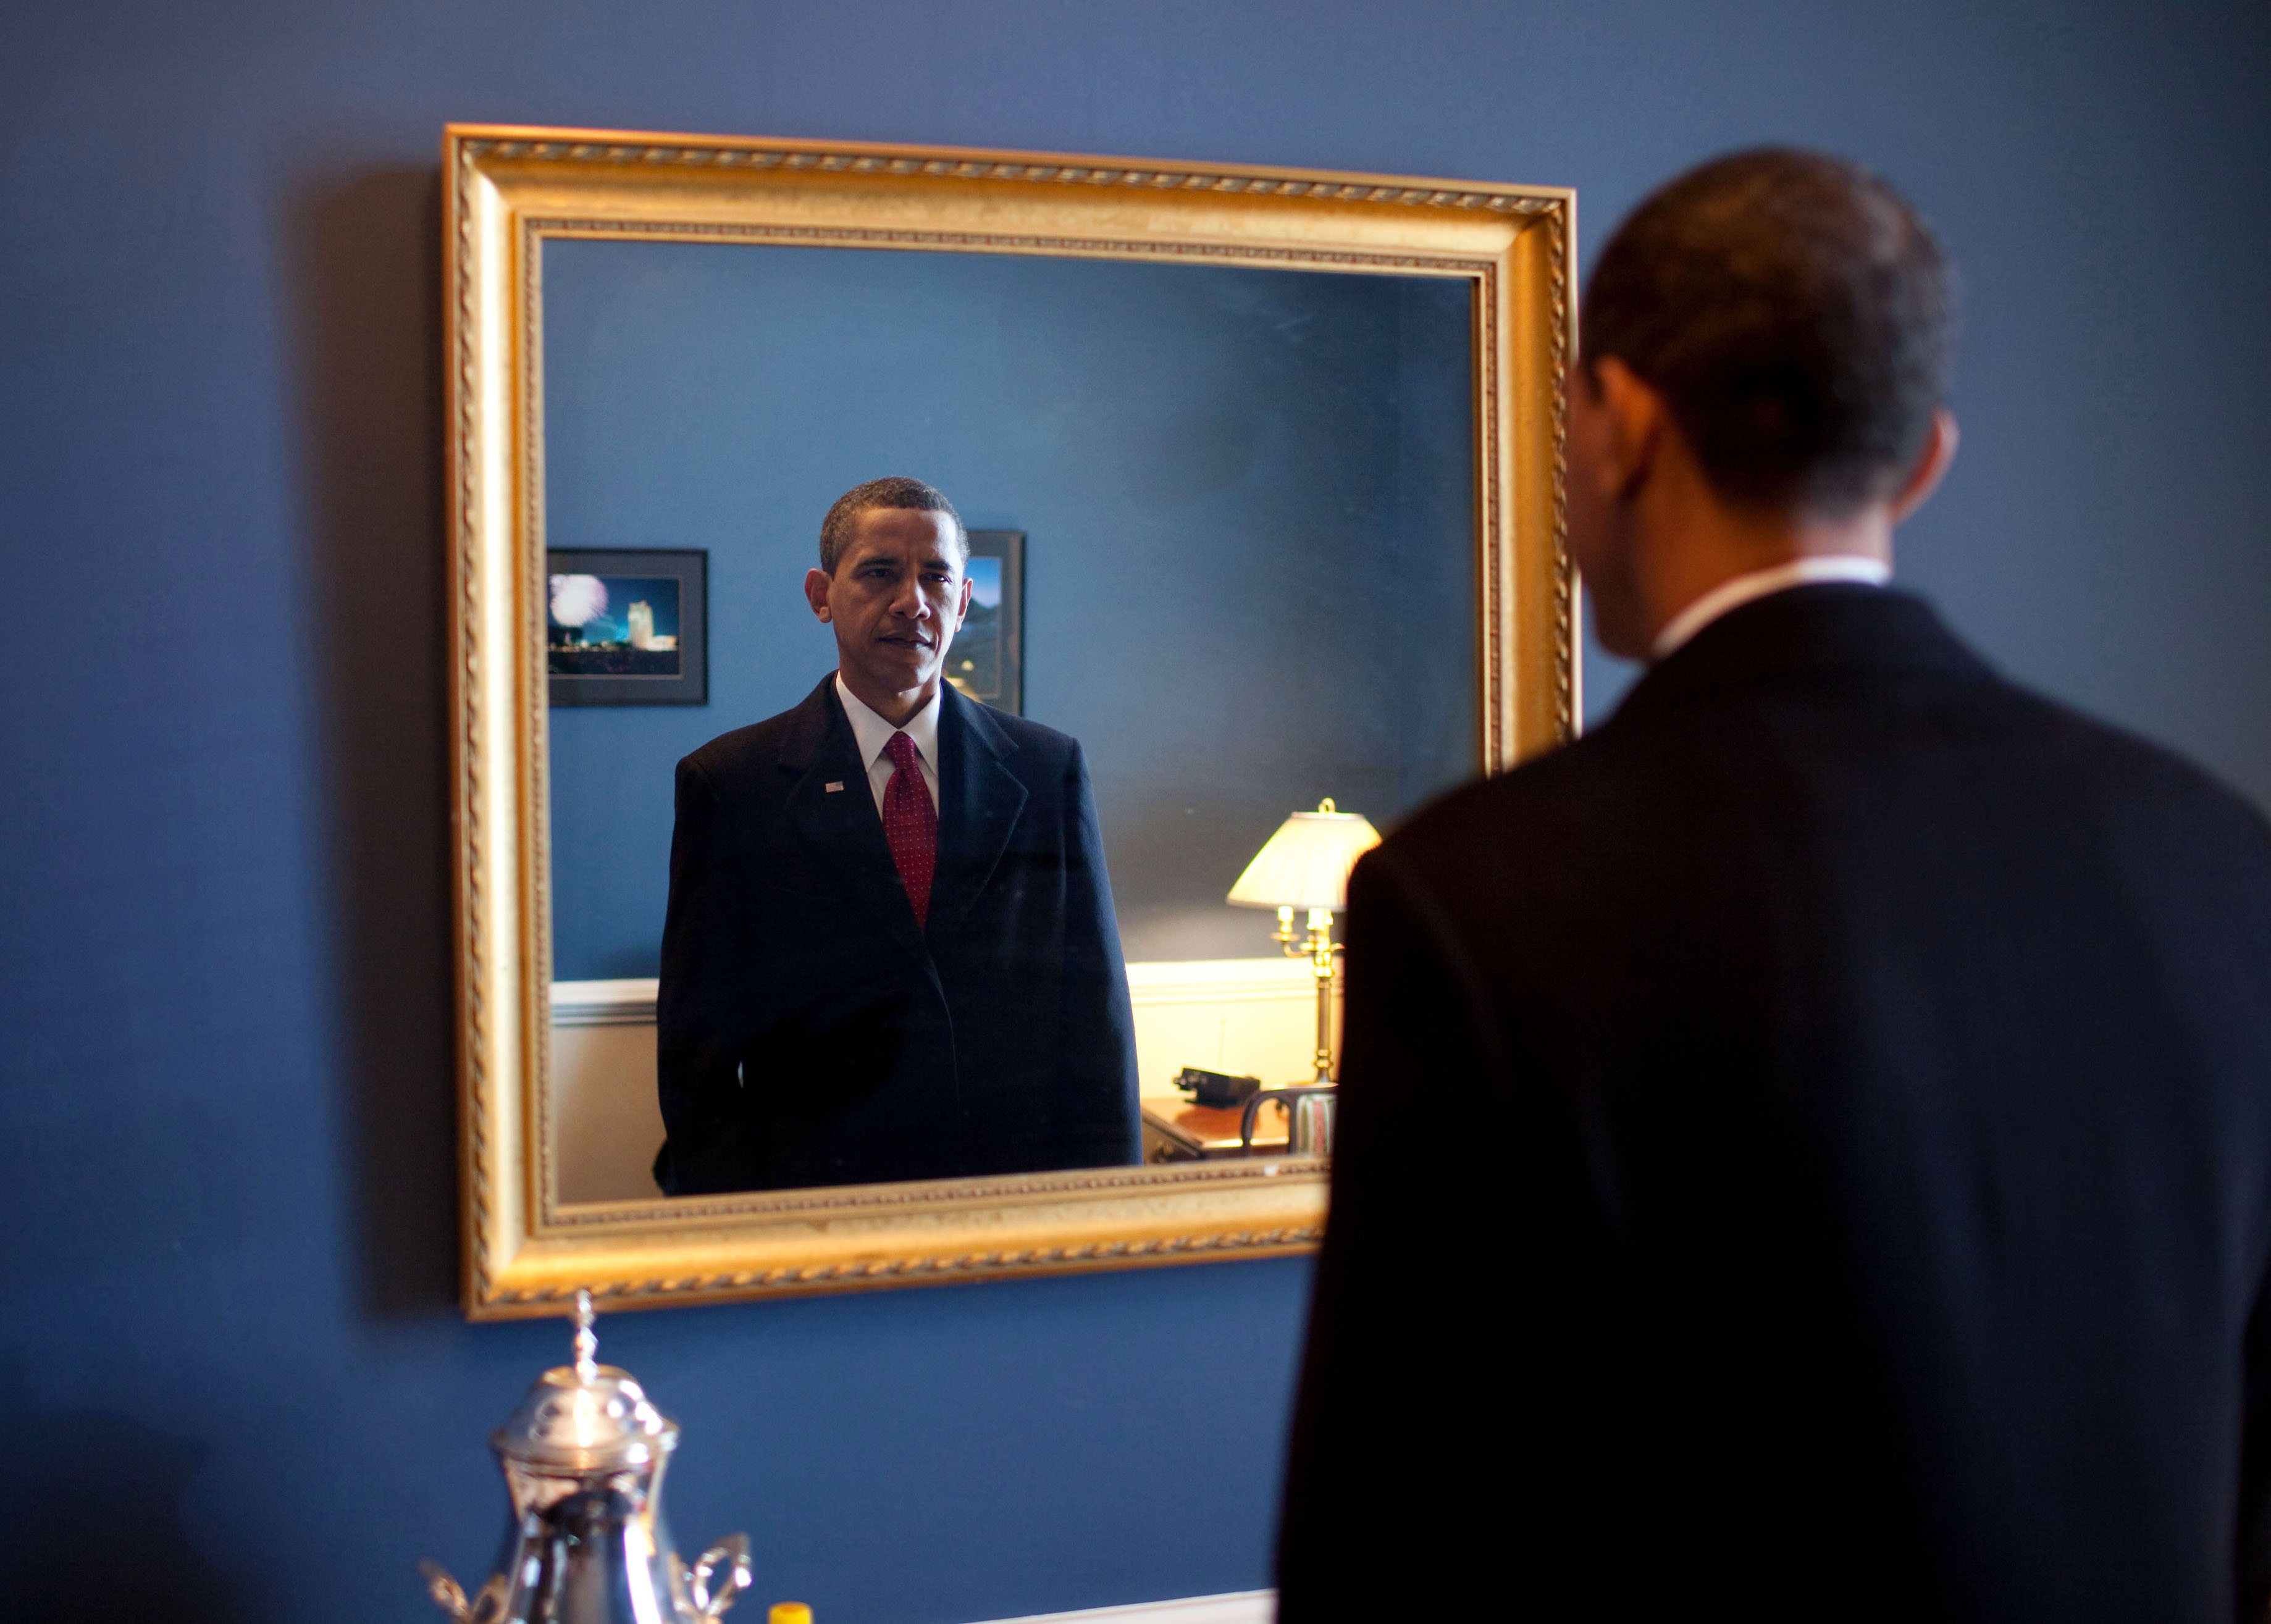 Former President Barack Obama standing in front of a mirror.